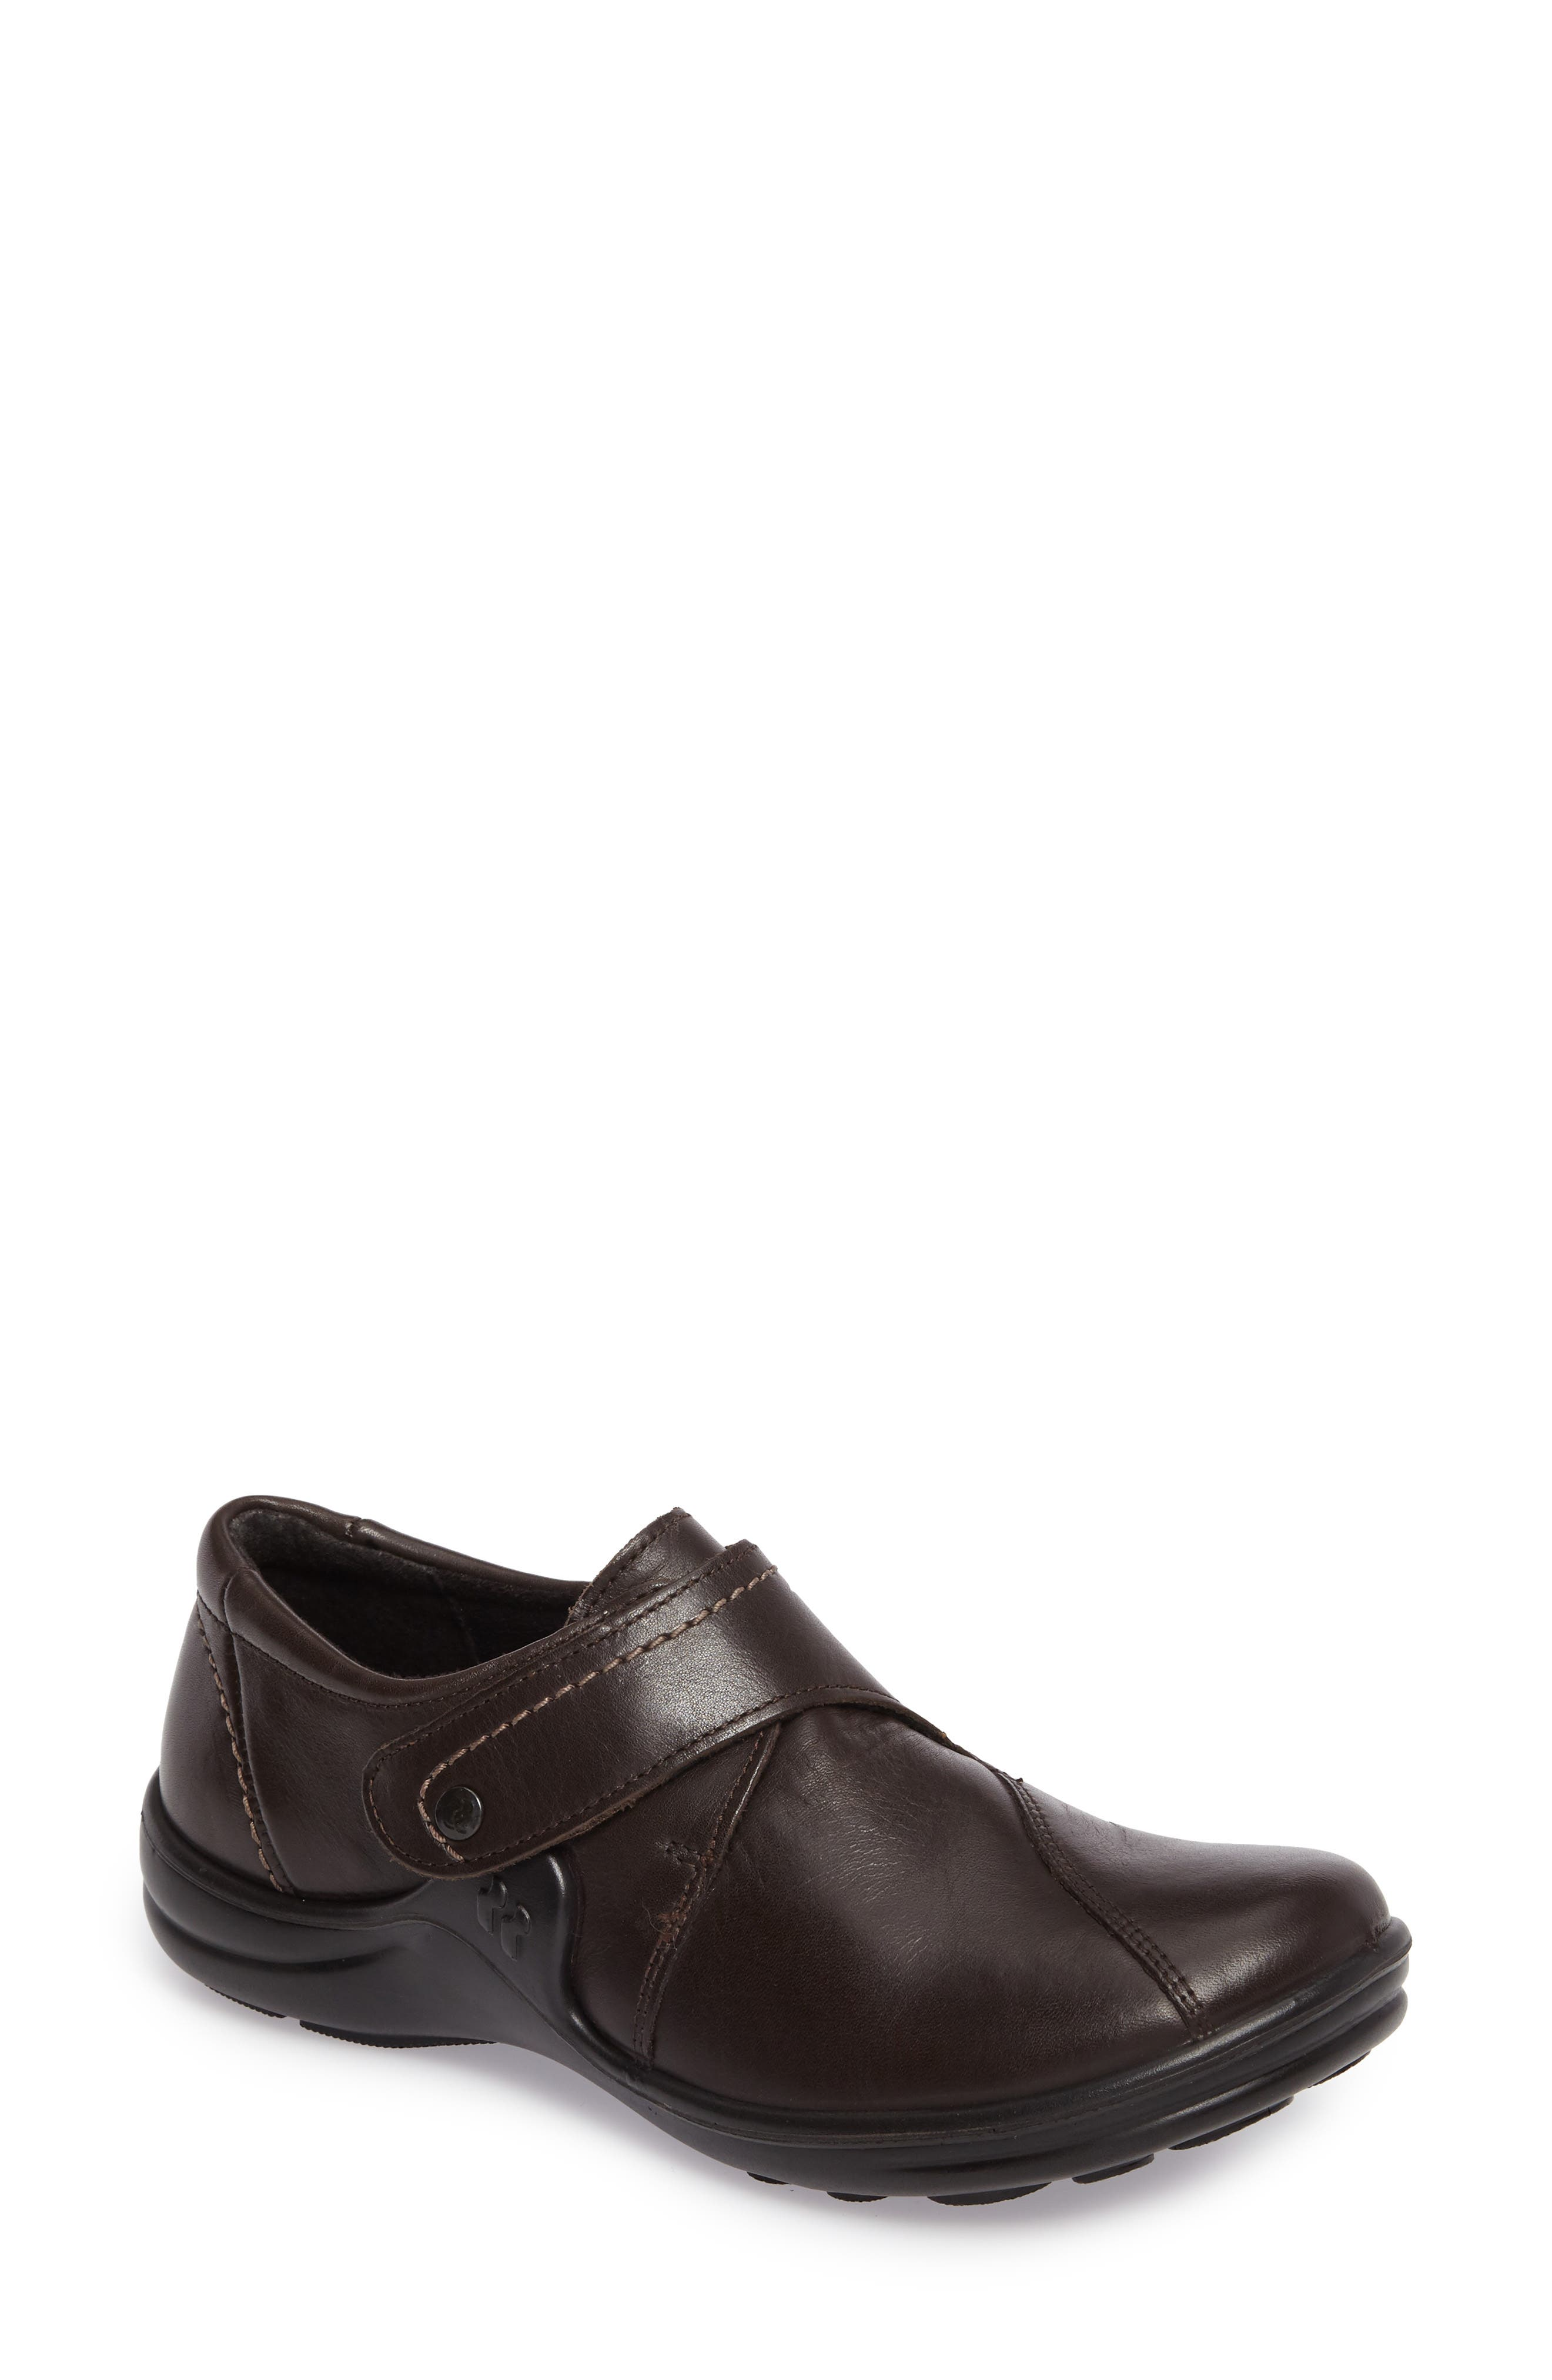 'Maddy 04' Slip-On Flat,                             Main thumbnail 1, color,                             Moro Leather